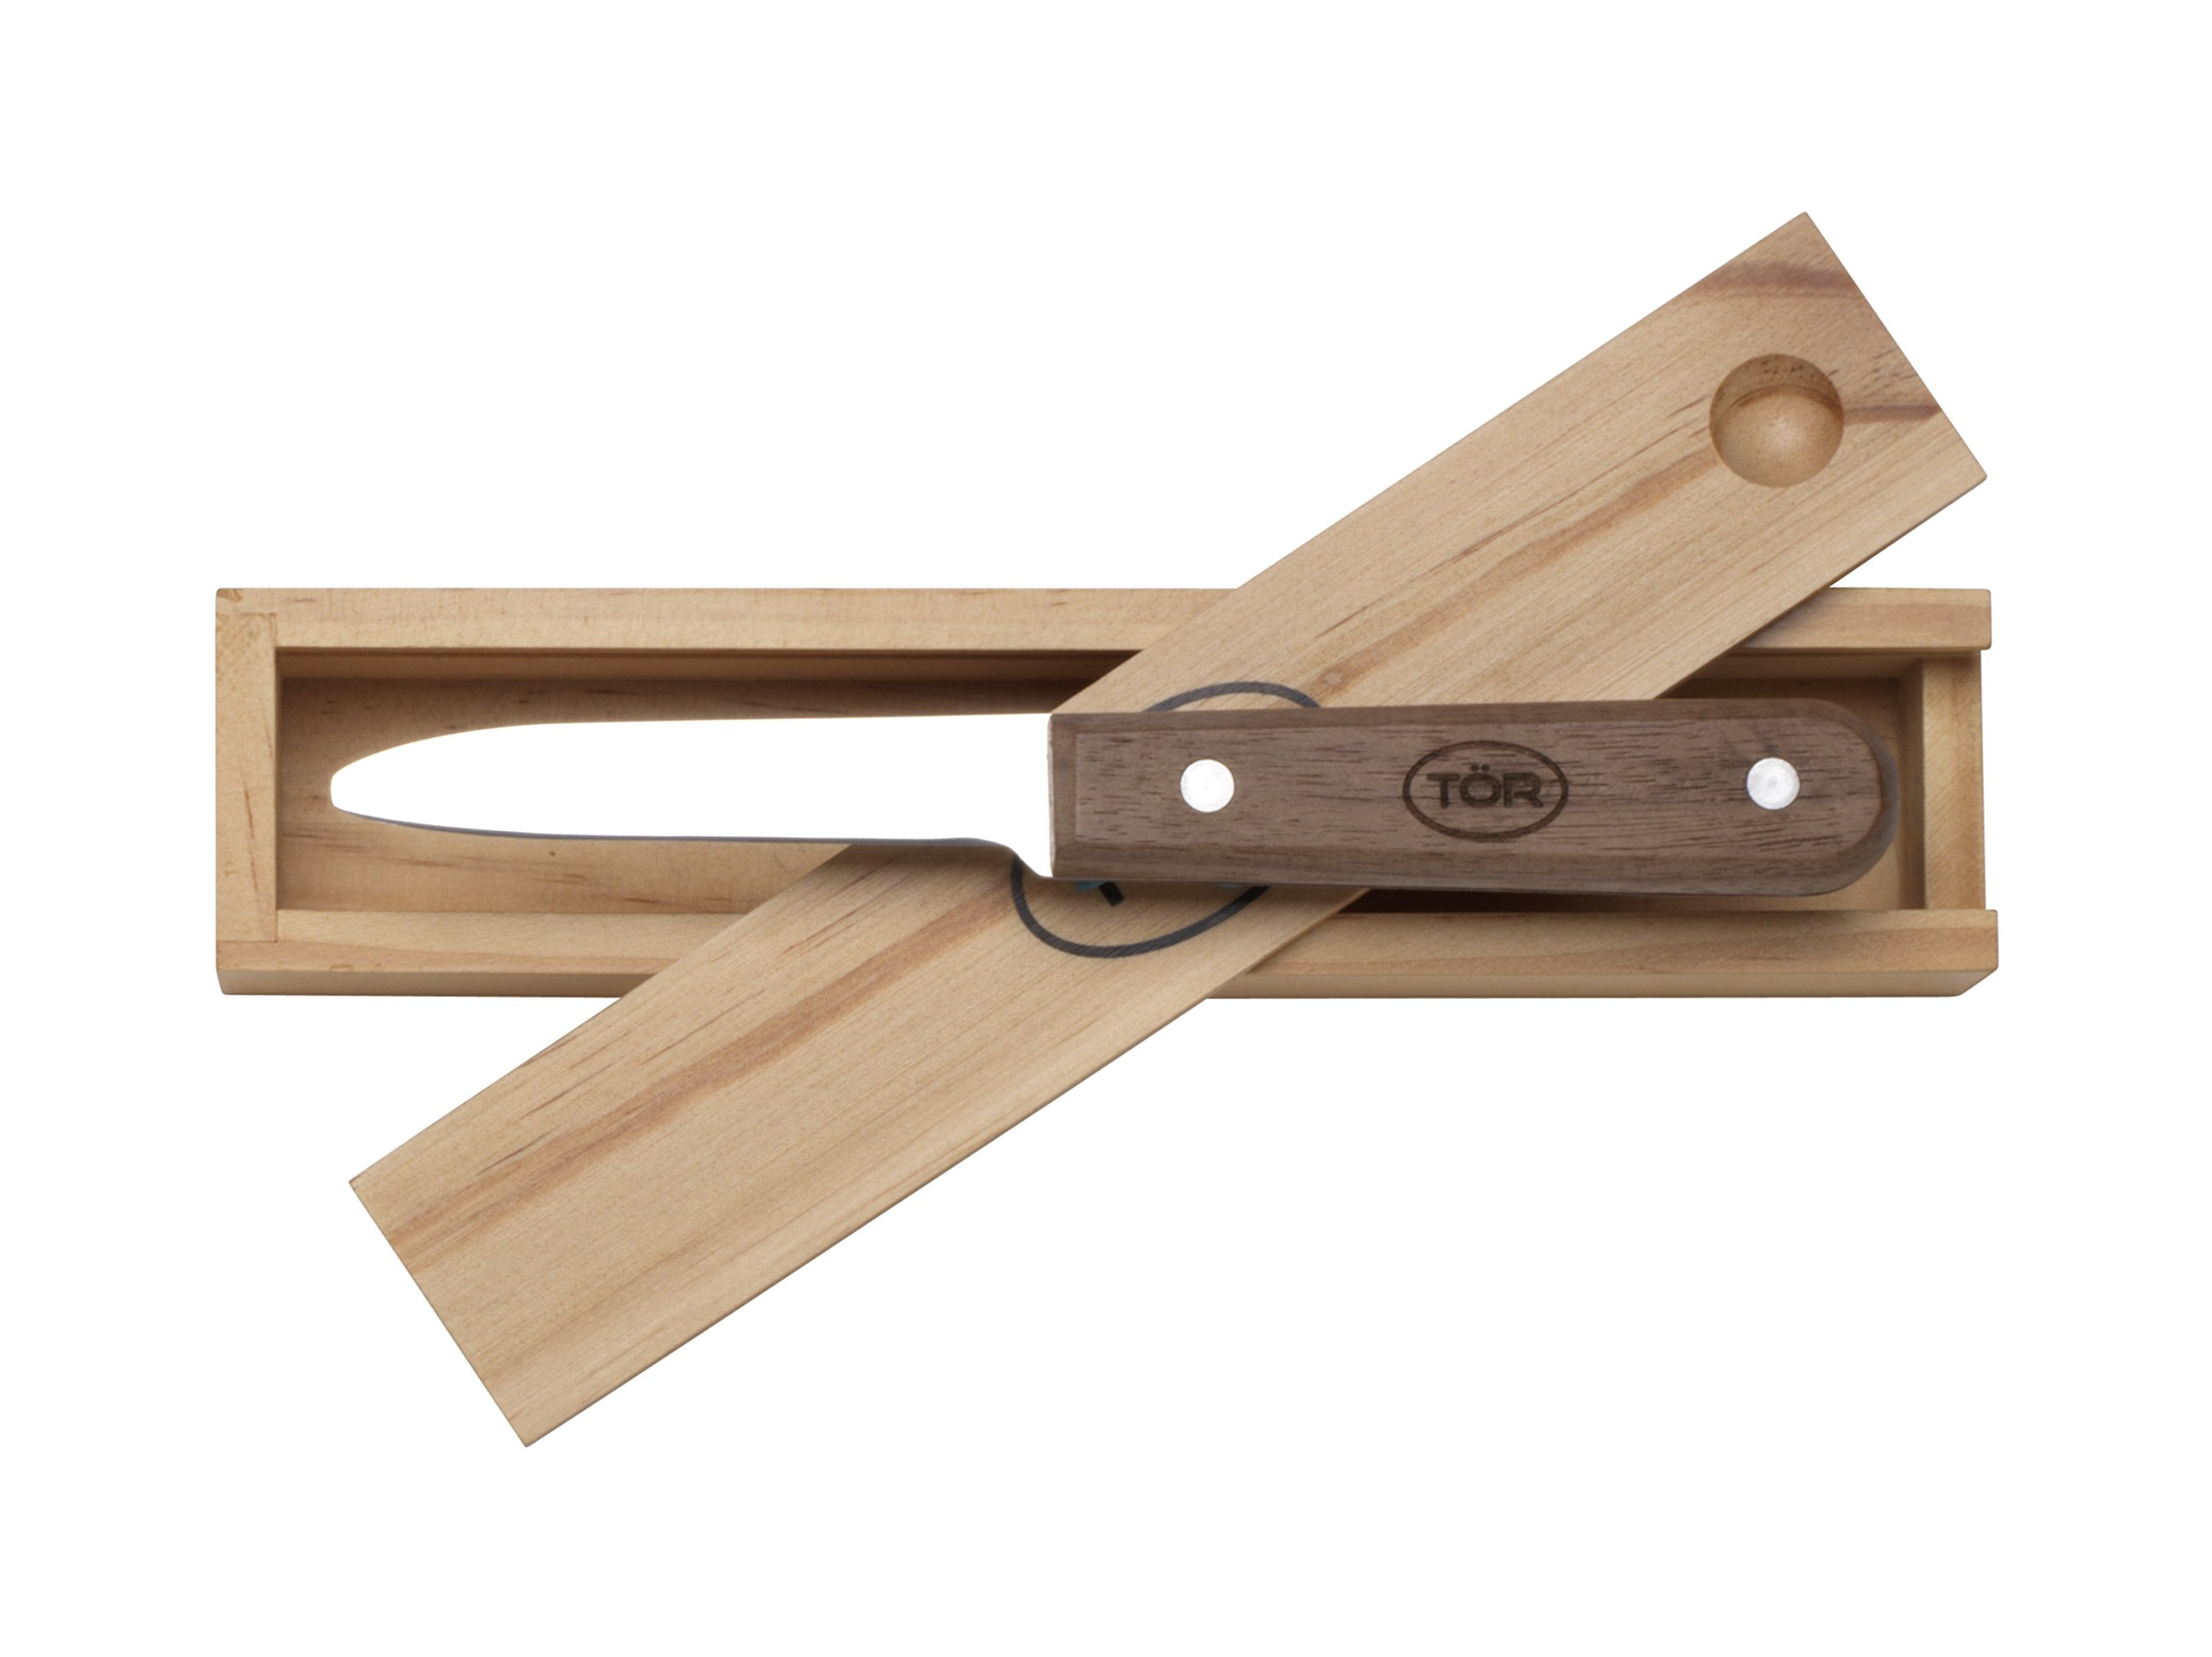 Clam Shucker Knife in Naturalwood Gift Box by TOR Kitchenware - The German Patented Stainless Steel Clam Shucking Knife and Opener Tool by TOR Kitchenware